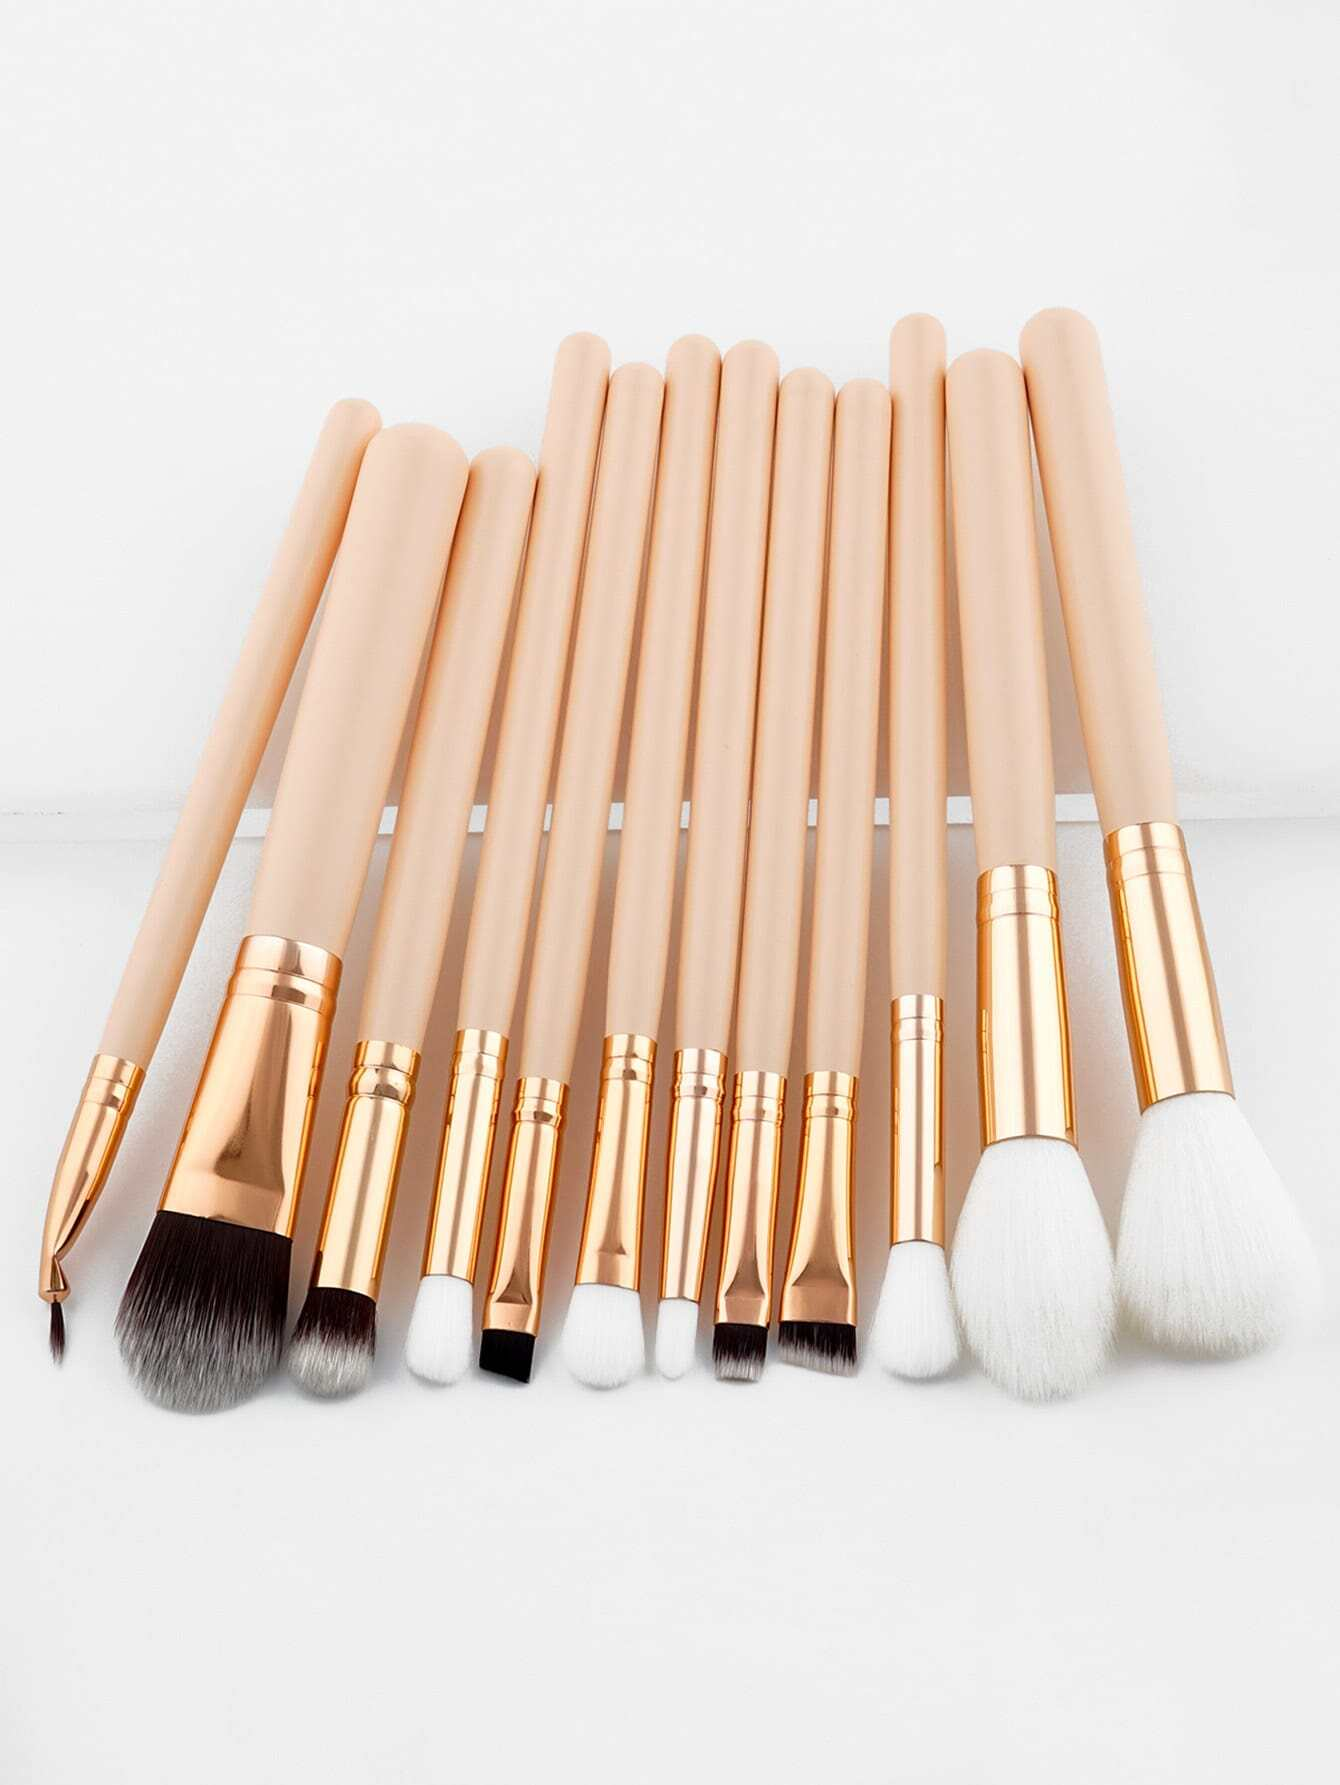 Professional Makeup Brush 12pcs